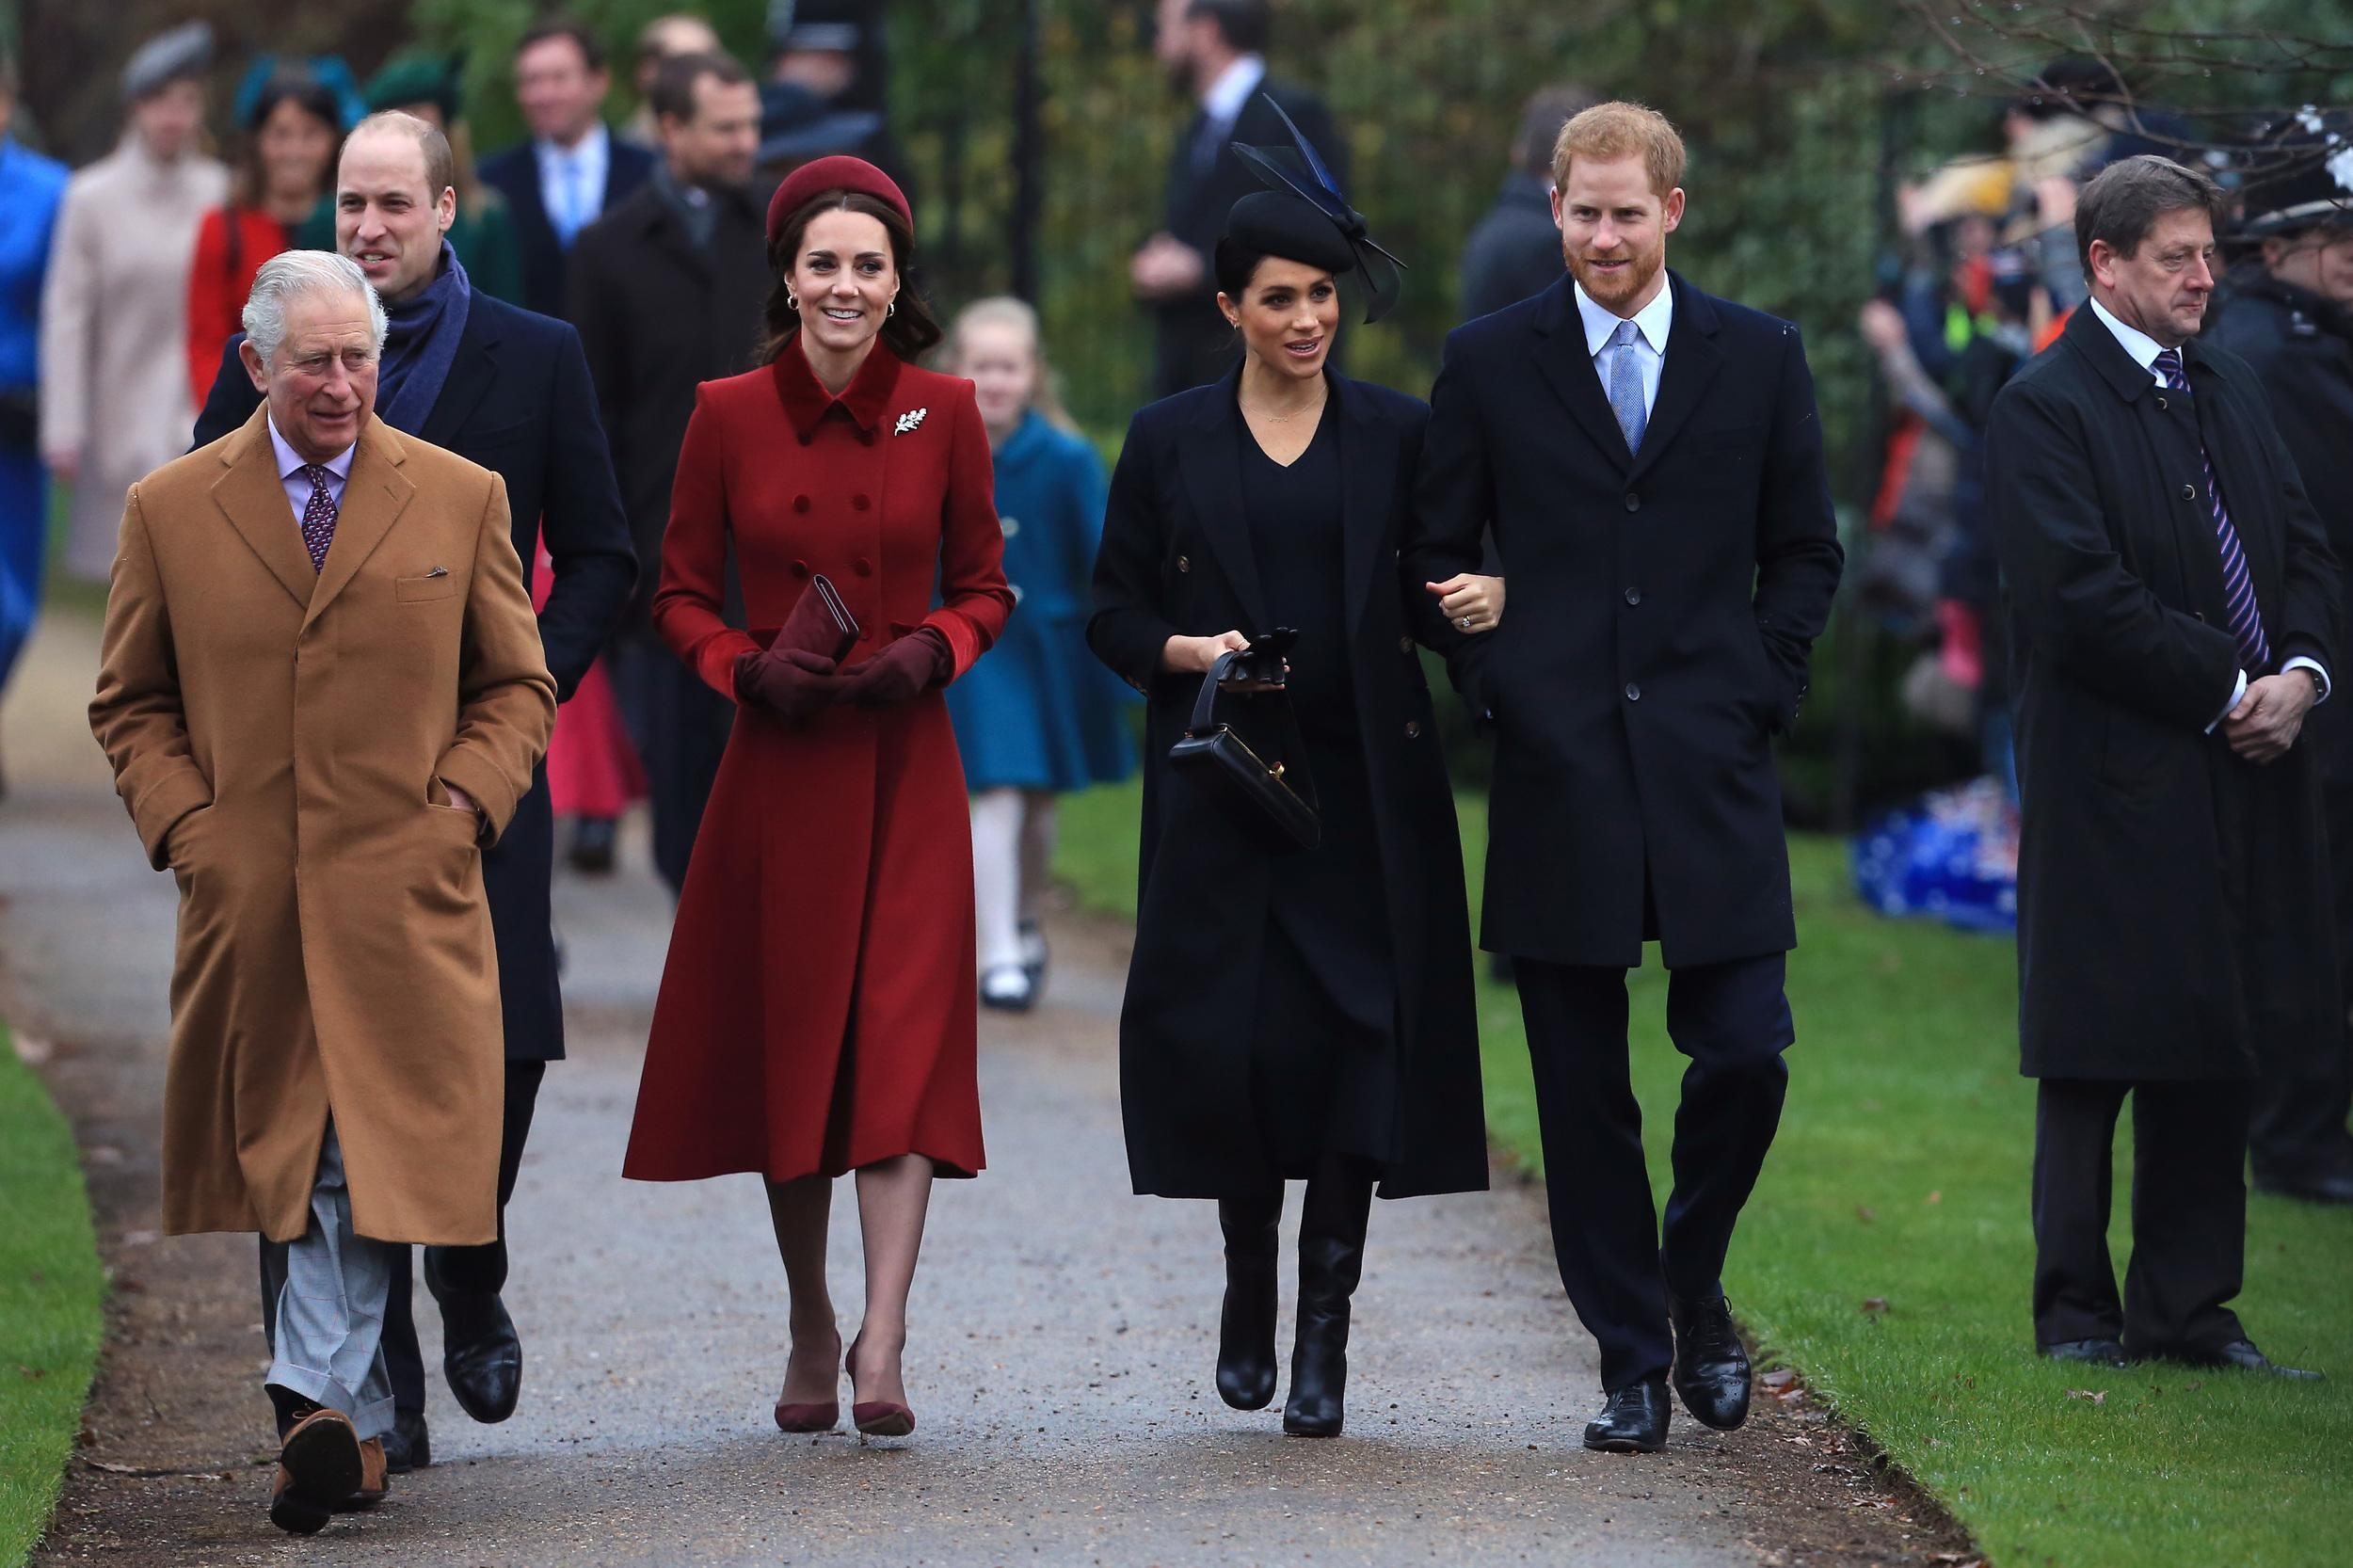 KING'S LYNN, ENGLAND - DECEMBER 25: (L-R) Prince Charles, Prince of Wales, Prince William, Duke of Cambridge, Catherine, Duchess of Cambridge, Meghan, Duchess of Sussex and Prince Harry, Duke of Sussex arrive to attend Christmas Day Church service at Church of St Mary Magdalene on the Sandringham estate on December 25, 2018 in King's Lynn, England. (Photo by Stephen Pond/Getty Images)